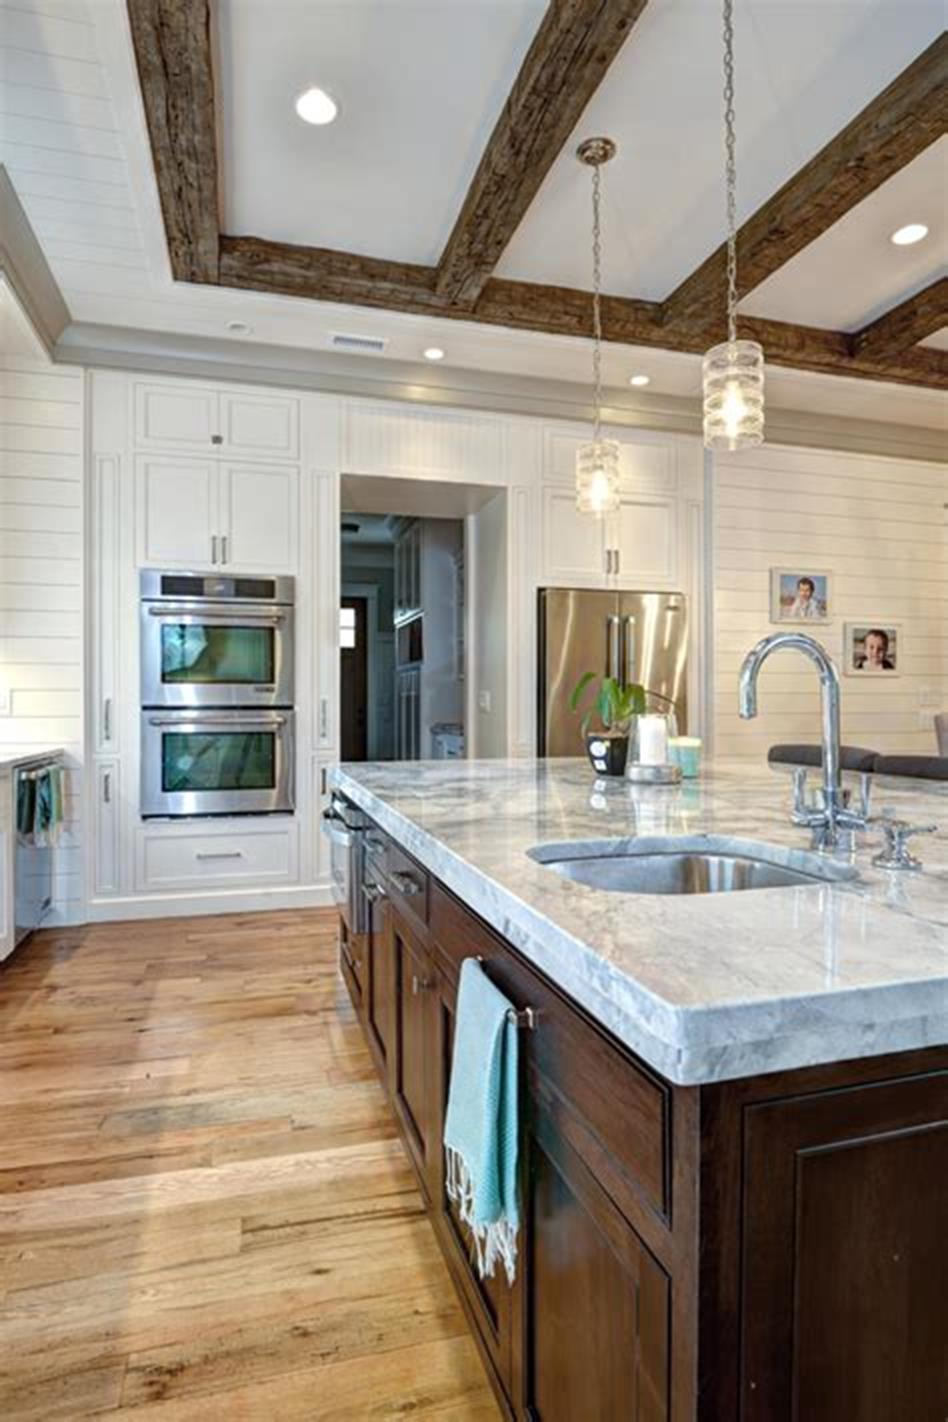 35 Stunning Contemporary Kitchen Design Ideas Youll Love 53